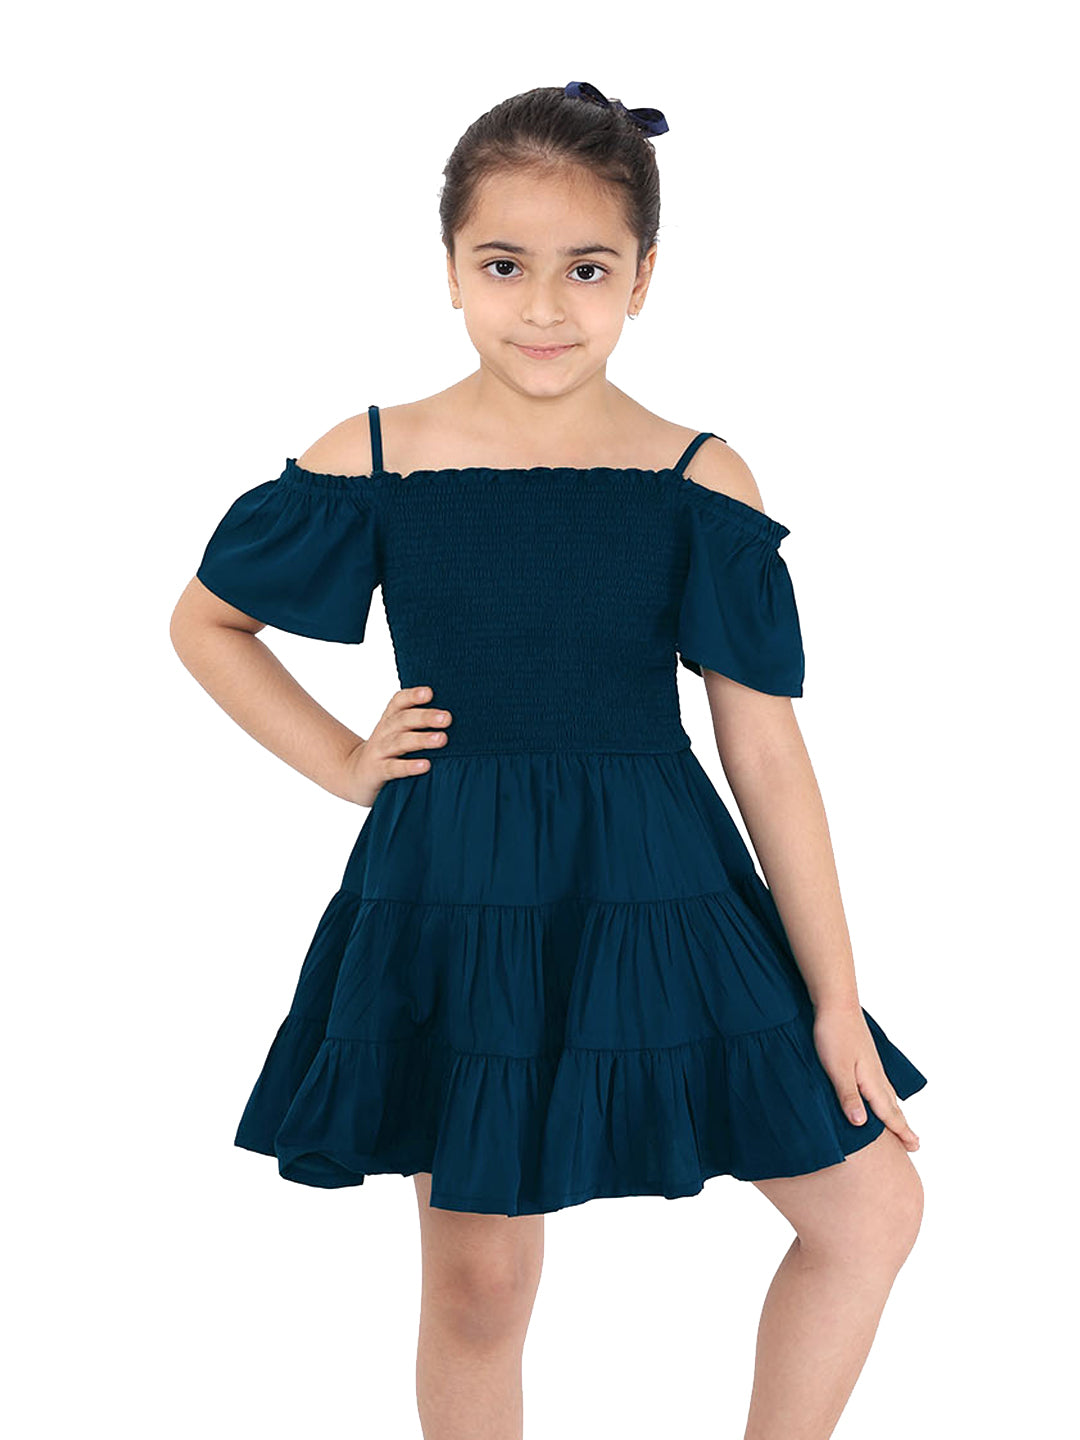 Naughty Ninos Girls Teal Solid Fit and Flared Dress